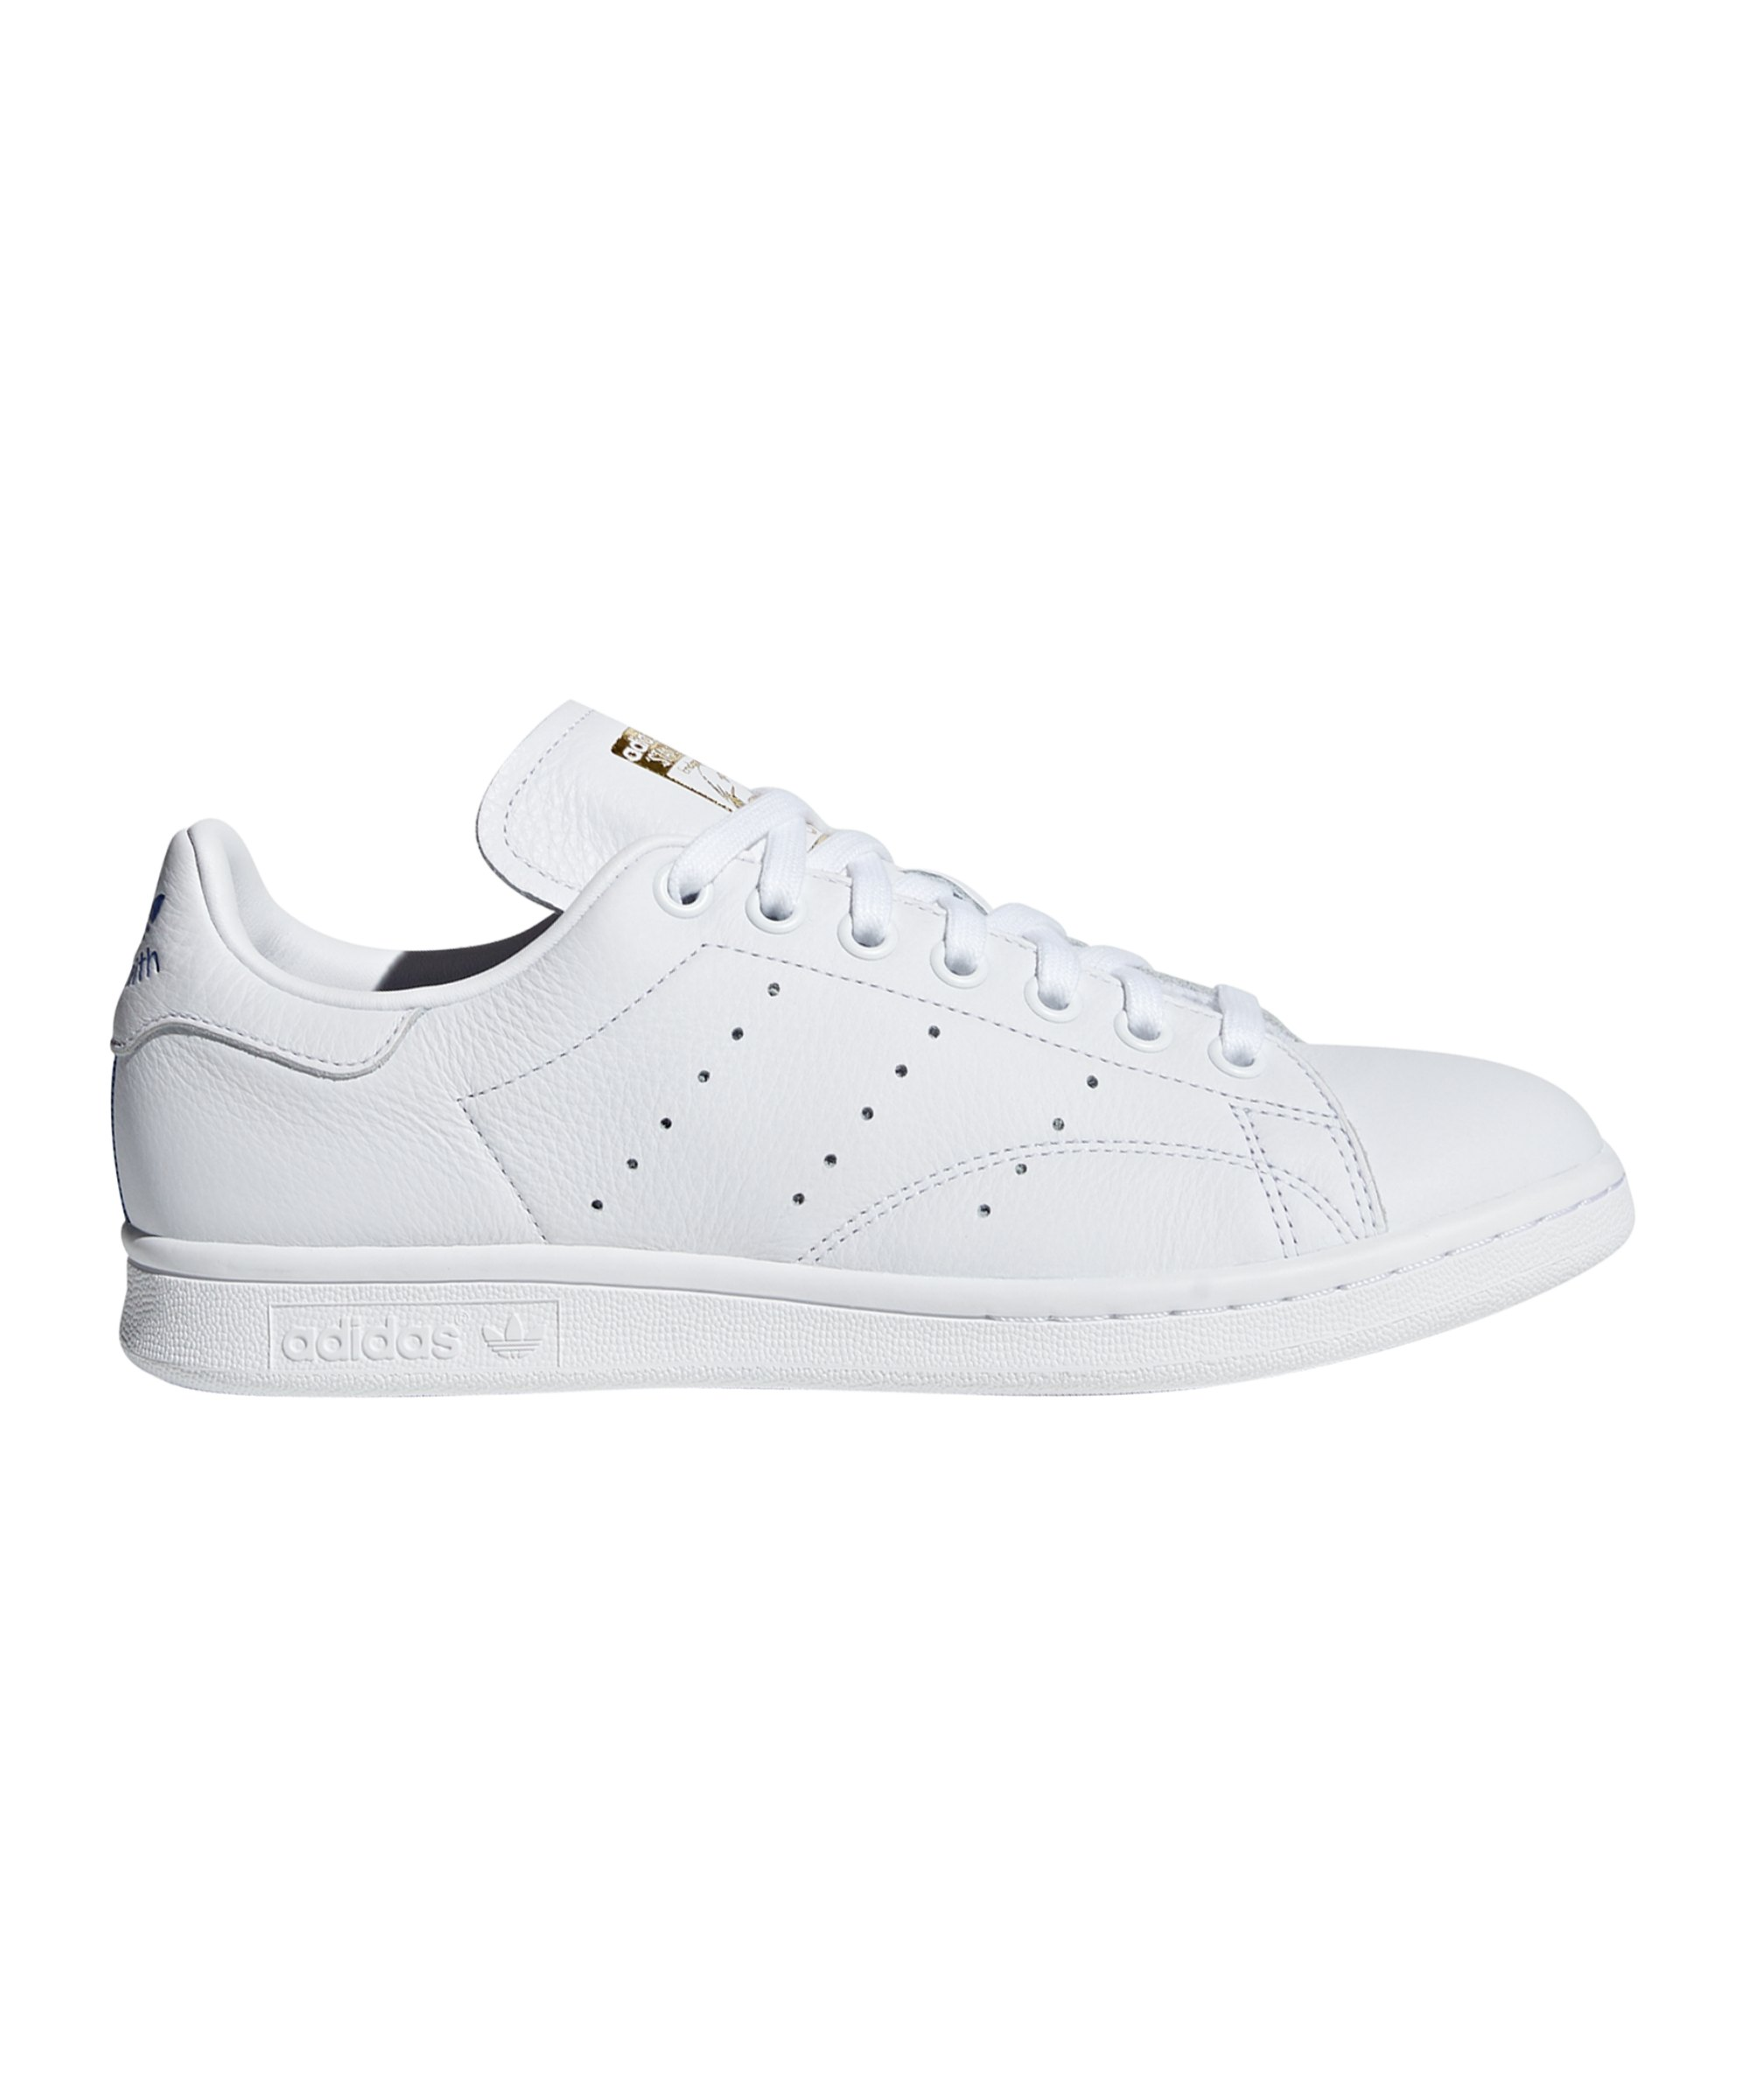 adidas Originals Stan Smith Sneaker Damen Weiss